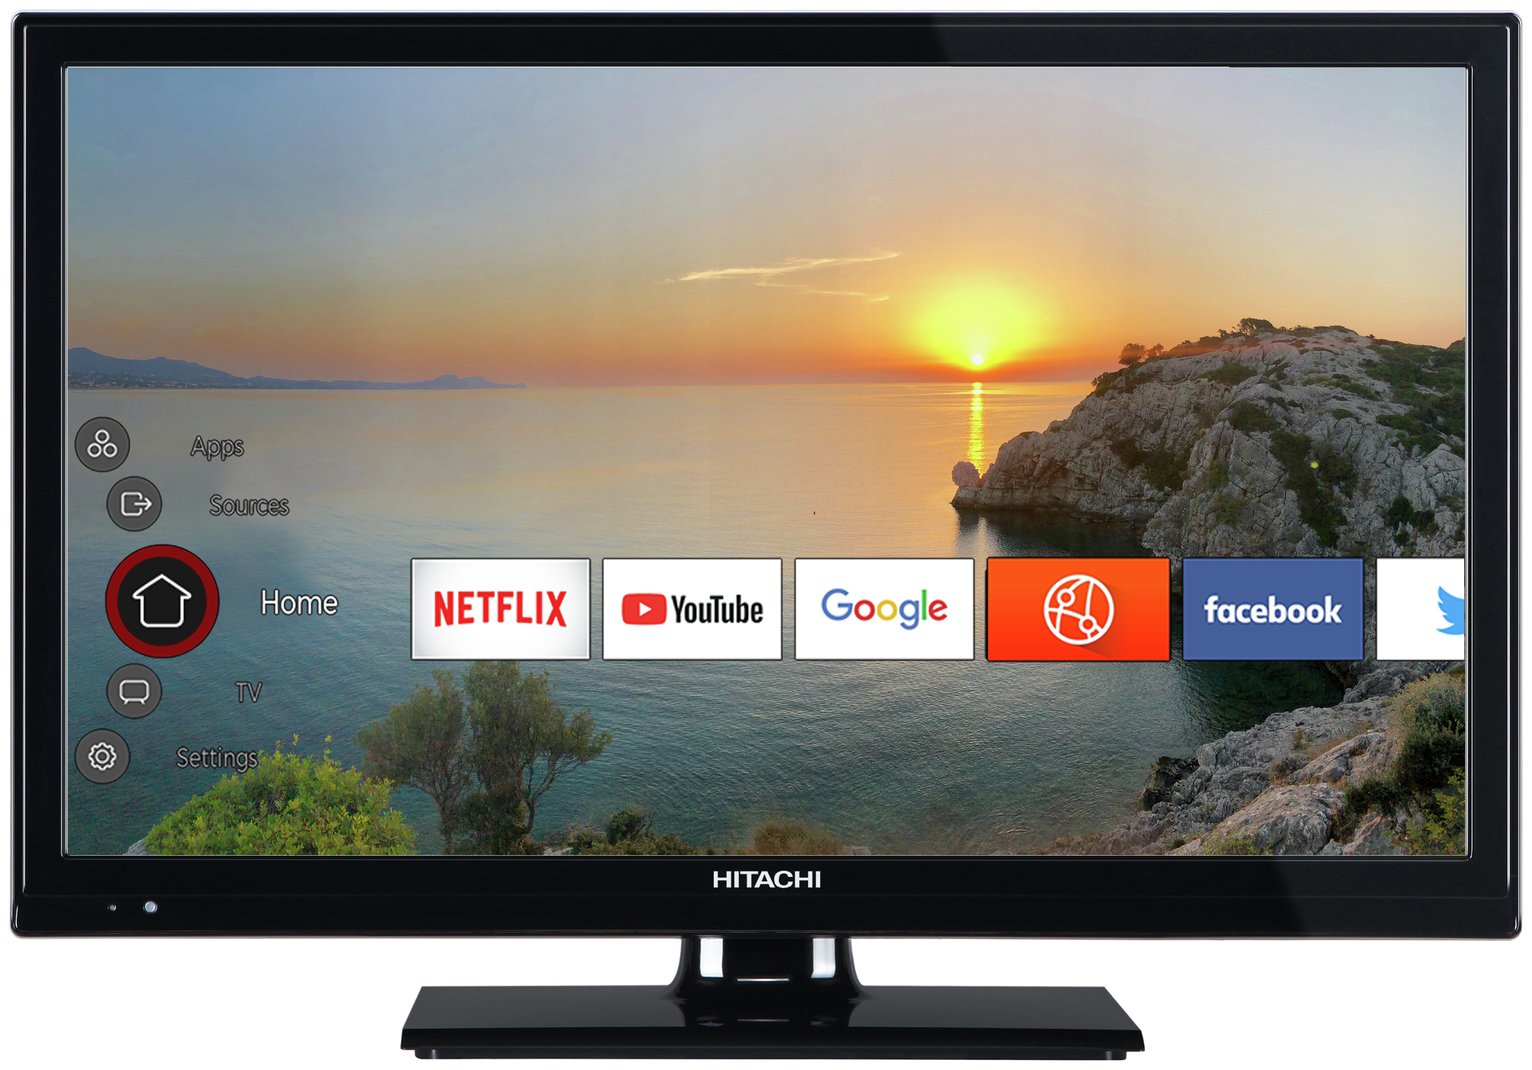 Hitachi 24 Inch Smart HD Ready TV / DVD Combi from Hitachi